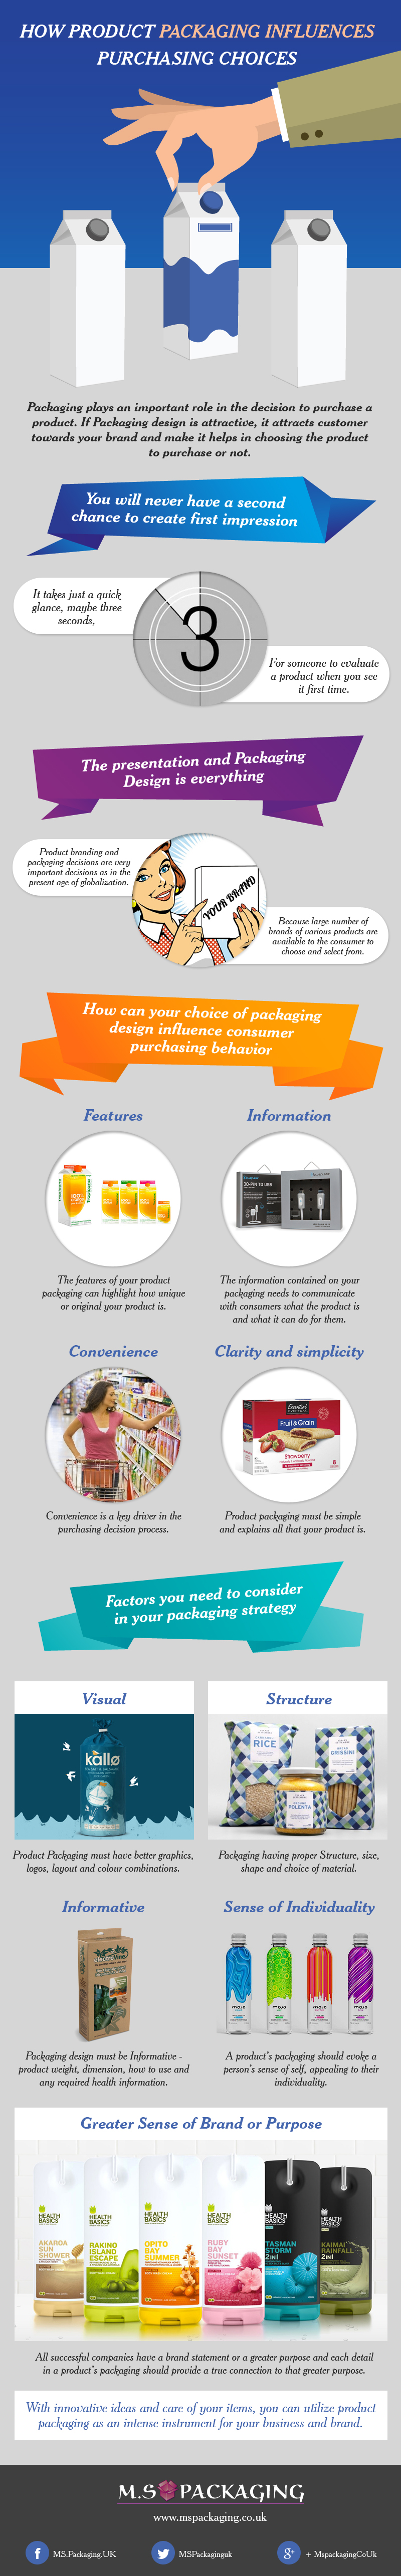 How Product packaging influences purchasing choices